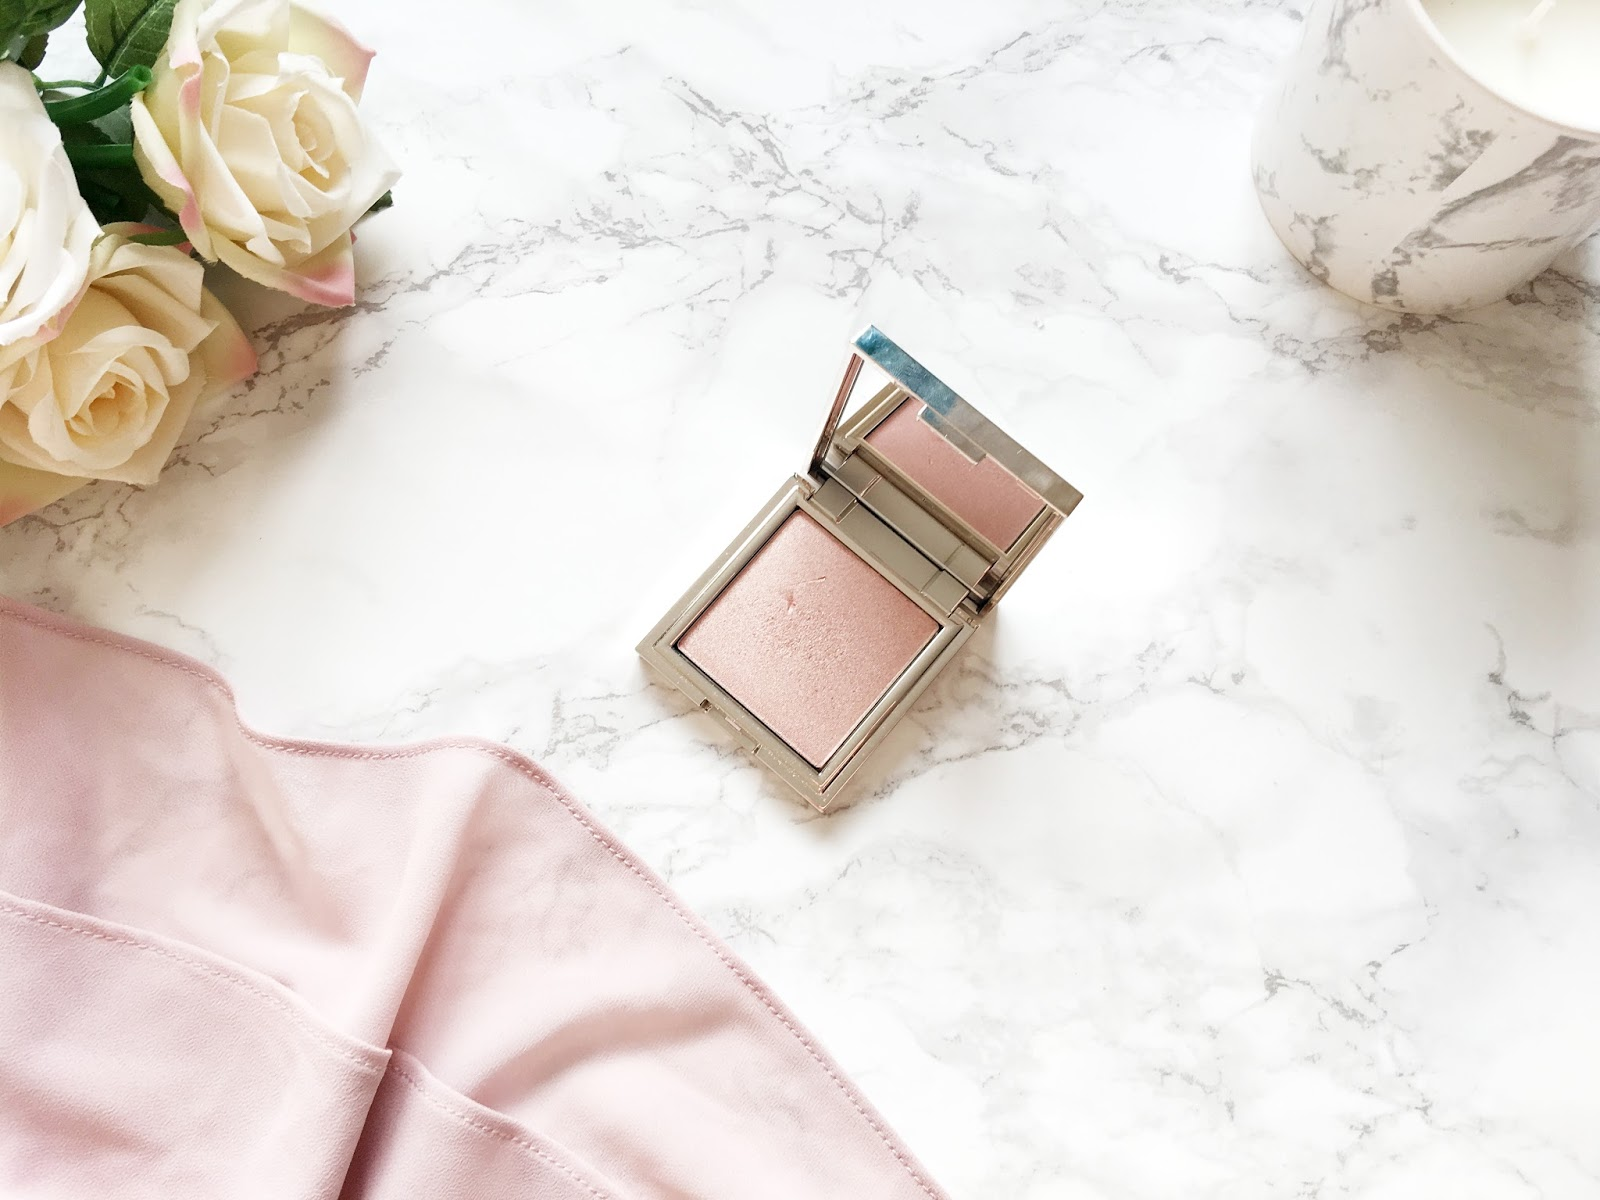 Jouer Powder Highlighter in Rose Quartz